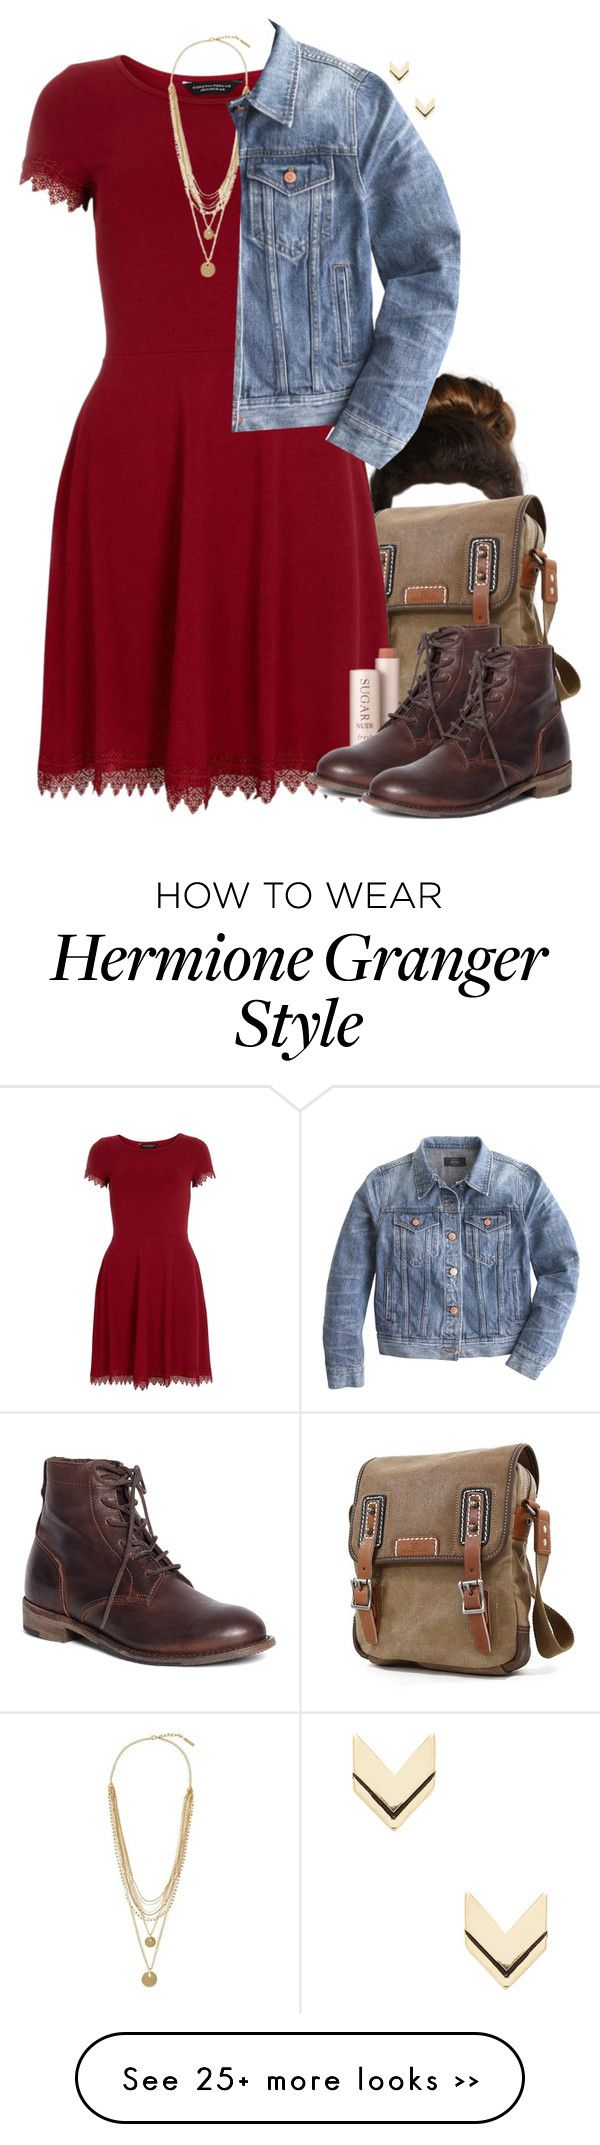 """""""Hermione Granger Inspired House Party Outfit"""" by hpstyle on Polyvore"""